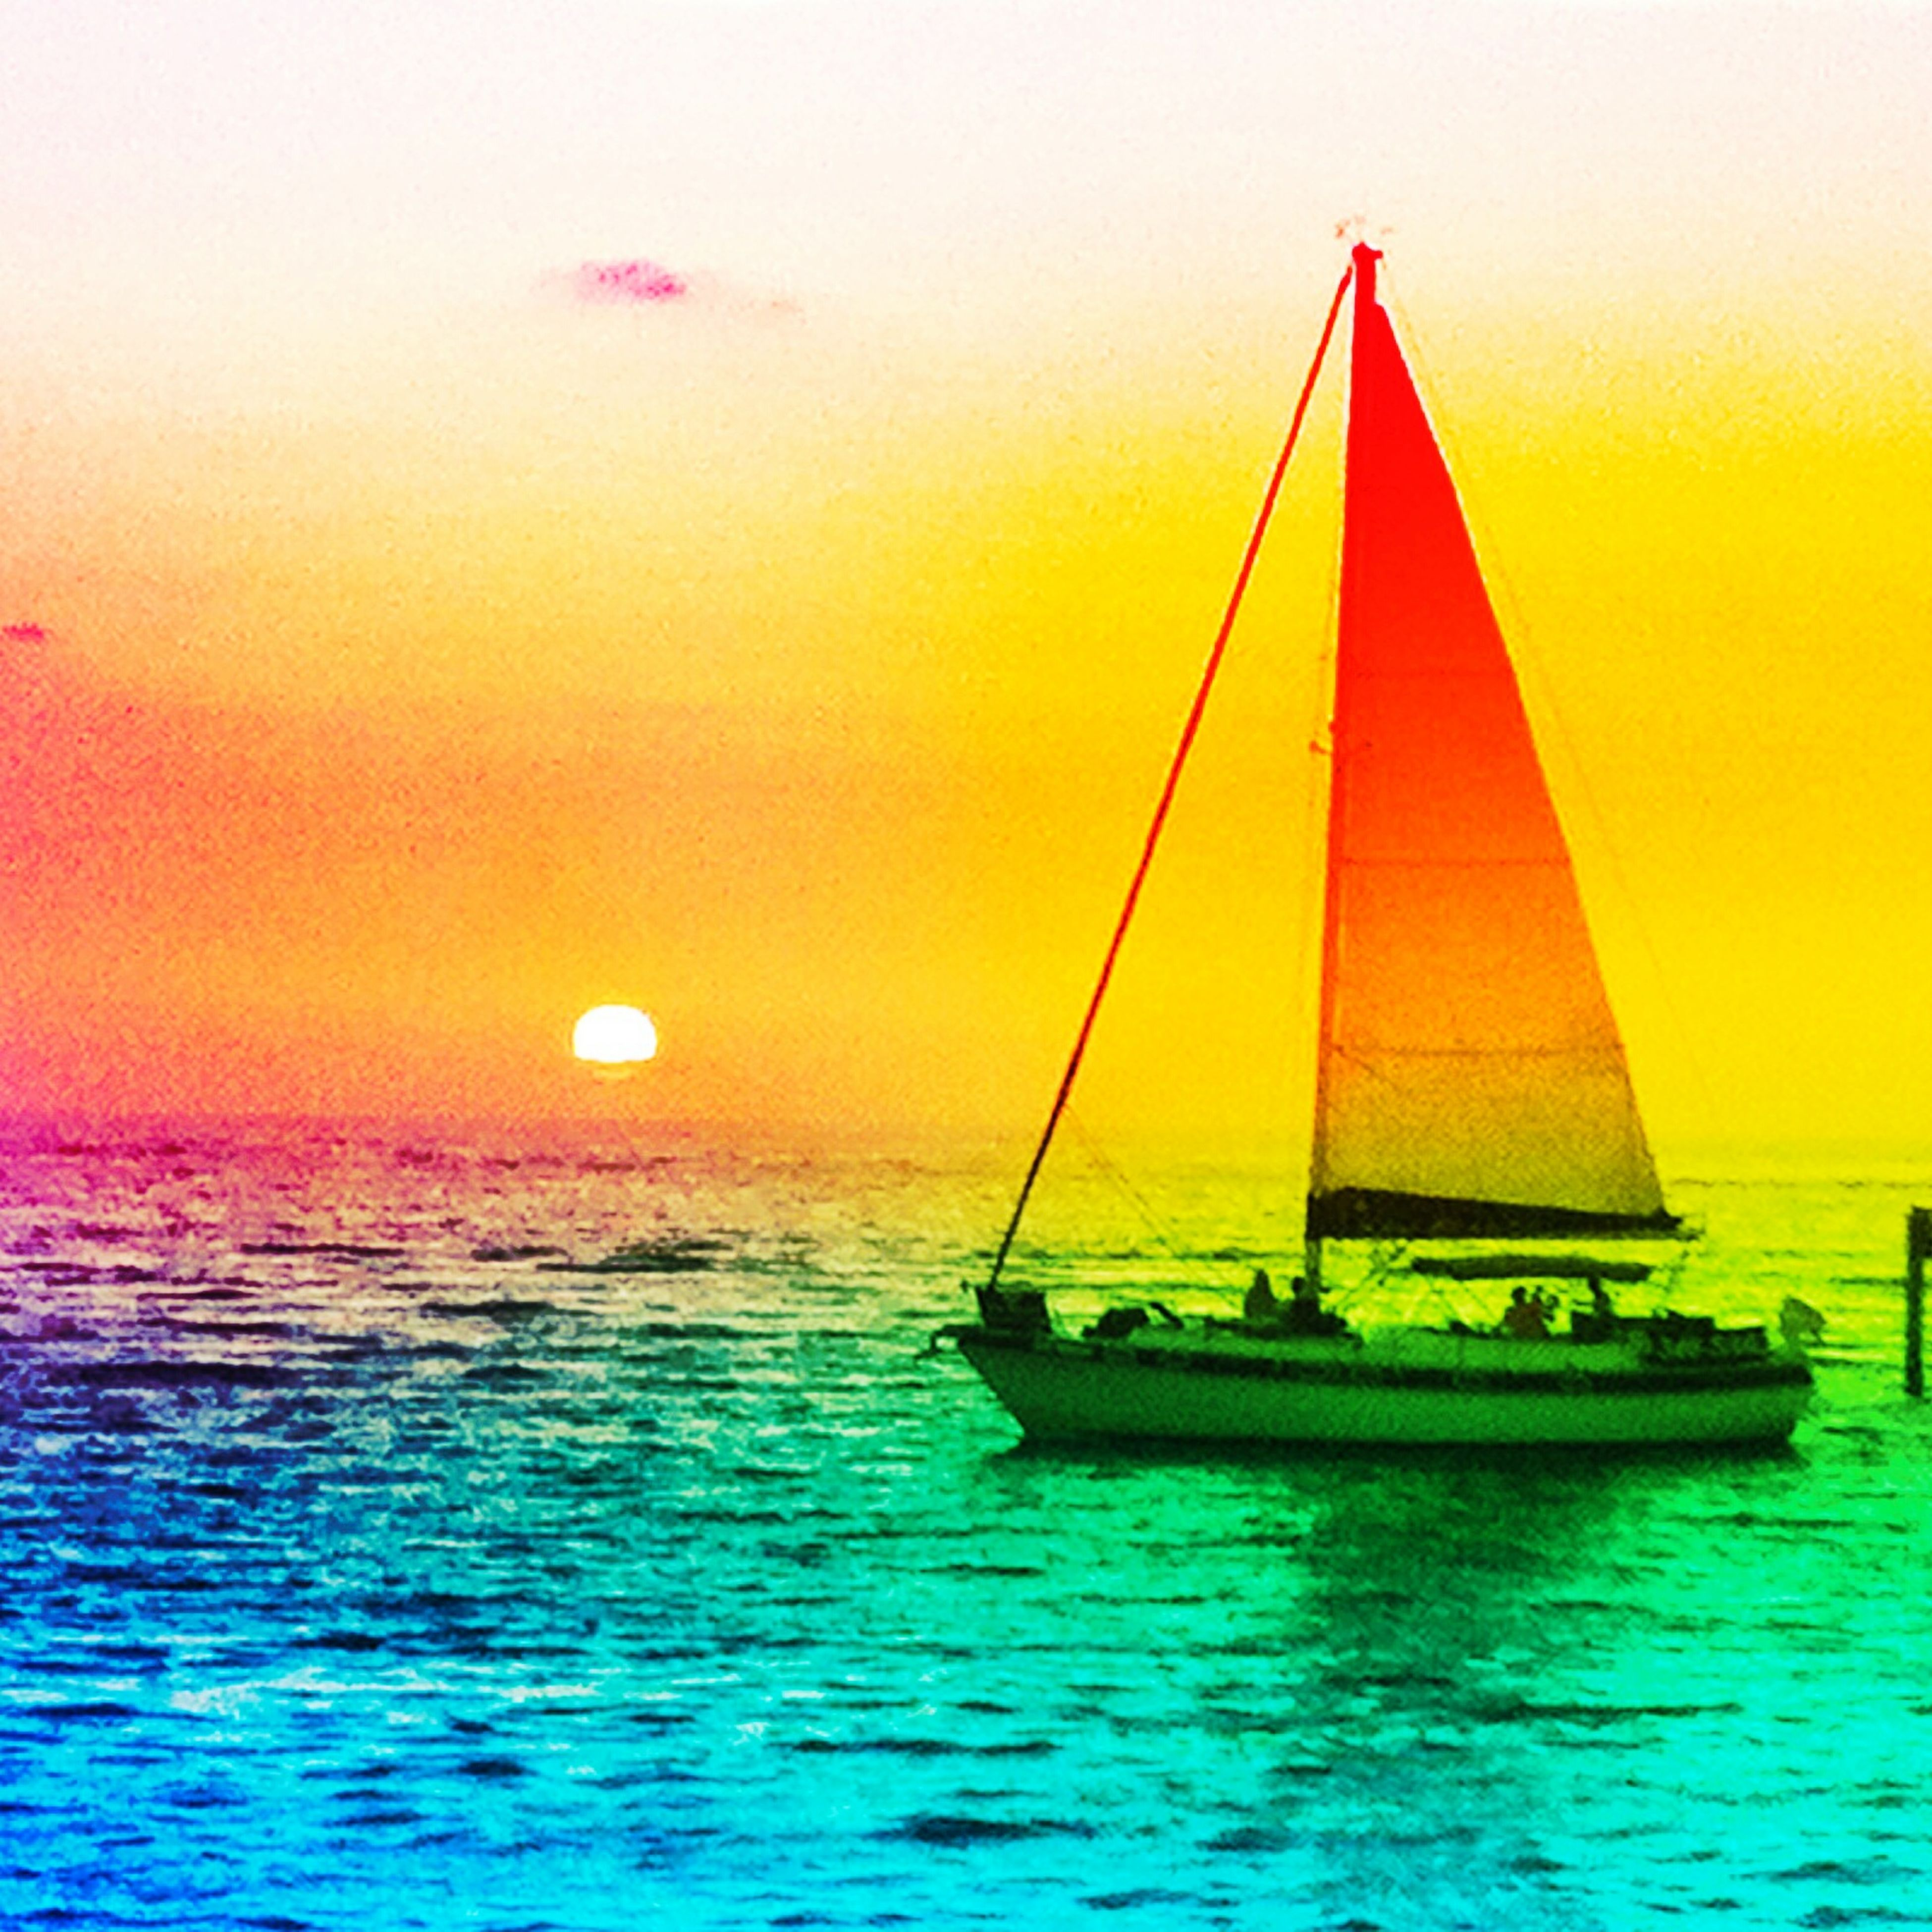 transportation, nautical vessel, sea, water, boat, mode of transport, waterfront, sunset, horizon over water, sailboat, sailing, scenics, beauty in nature, tranquility, tranquil scene, sky, rippled, orange color, nature, idyllic